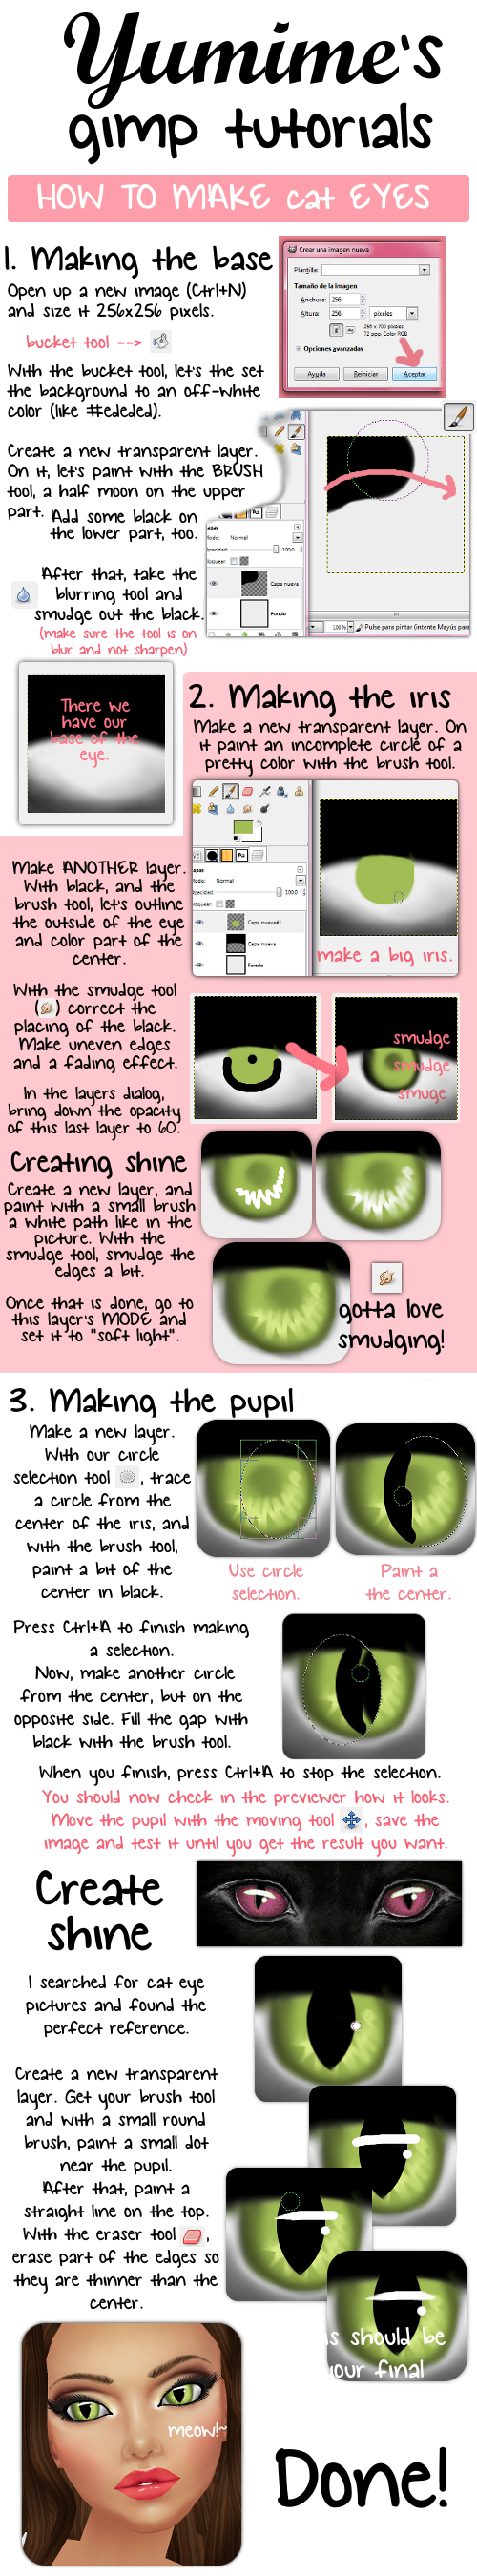 how to make cat eyes with gimp by carmenms on deviantart